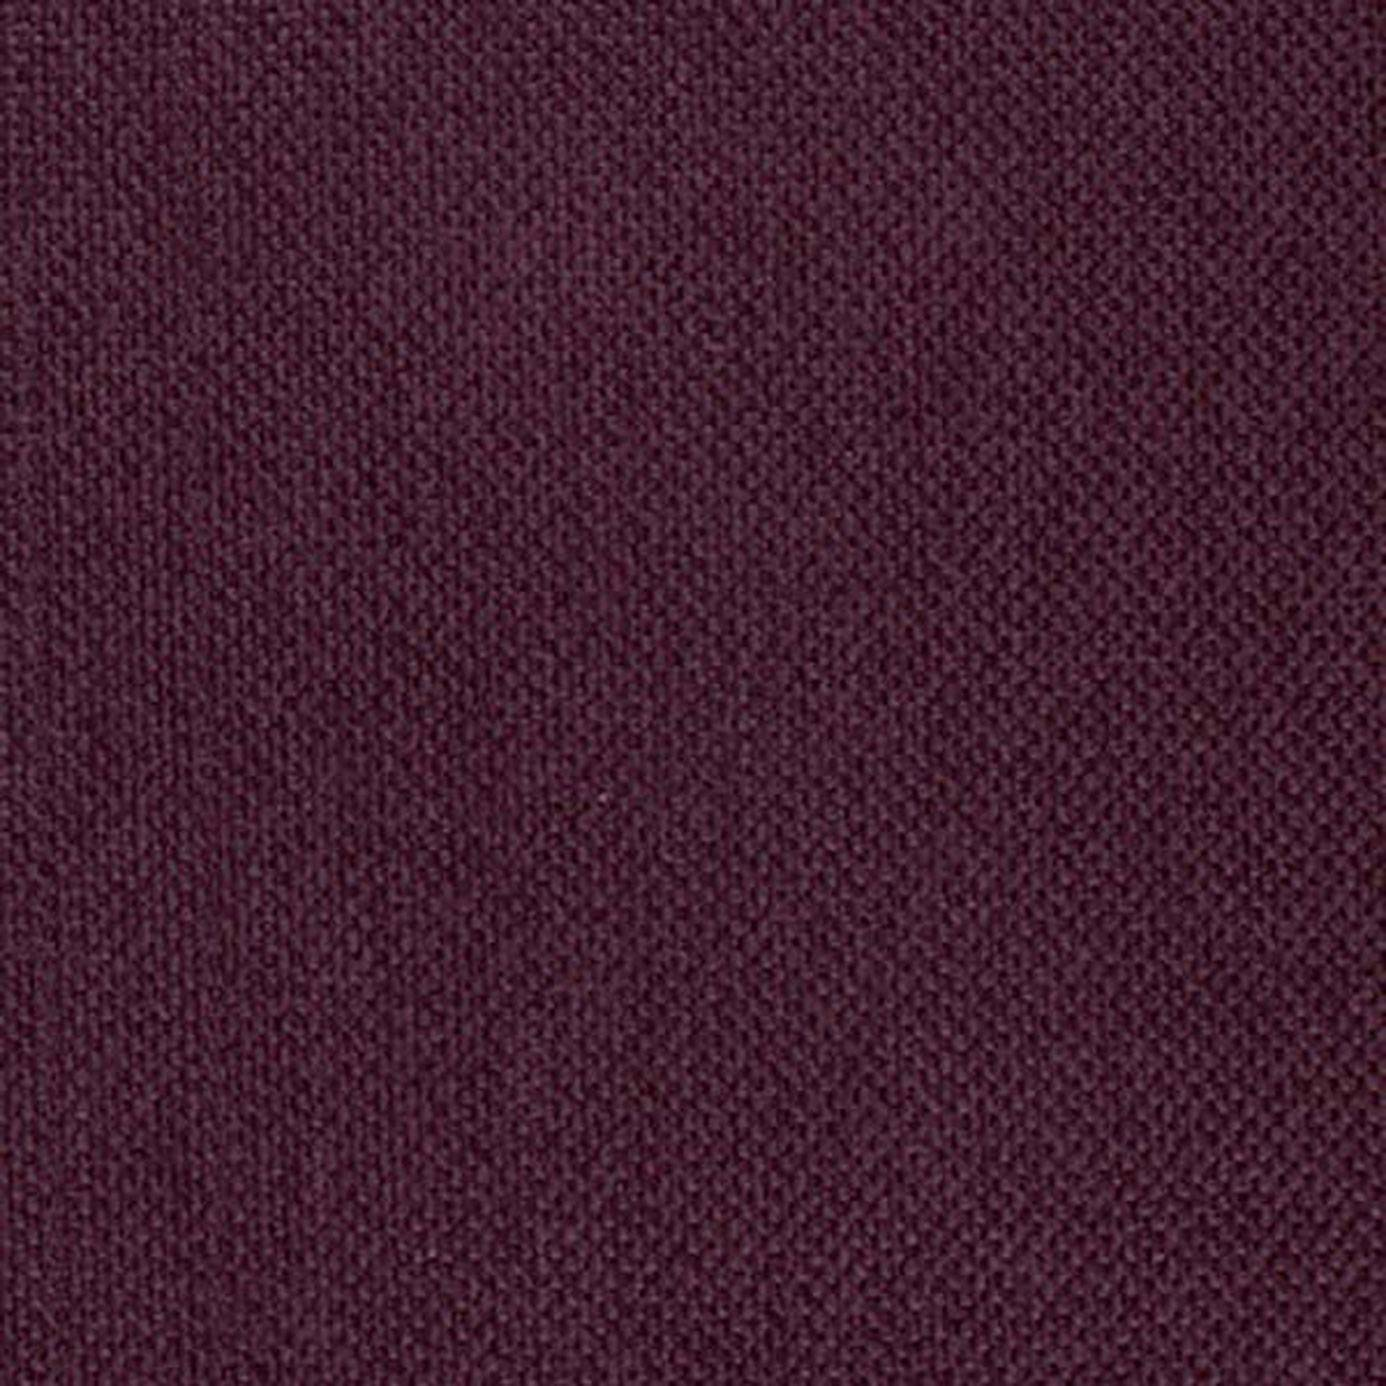 Zodiac fabric aubergine dalczo305 sanderson alchemy for Astrology fabric